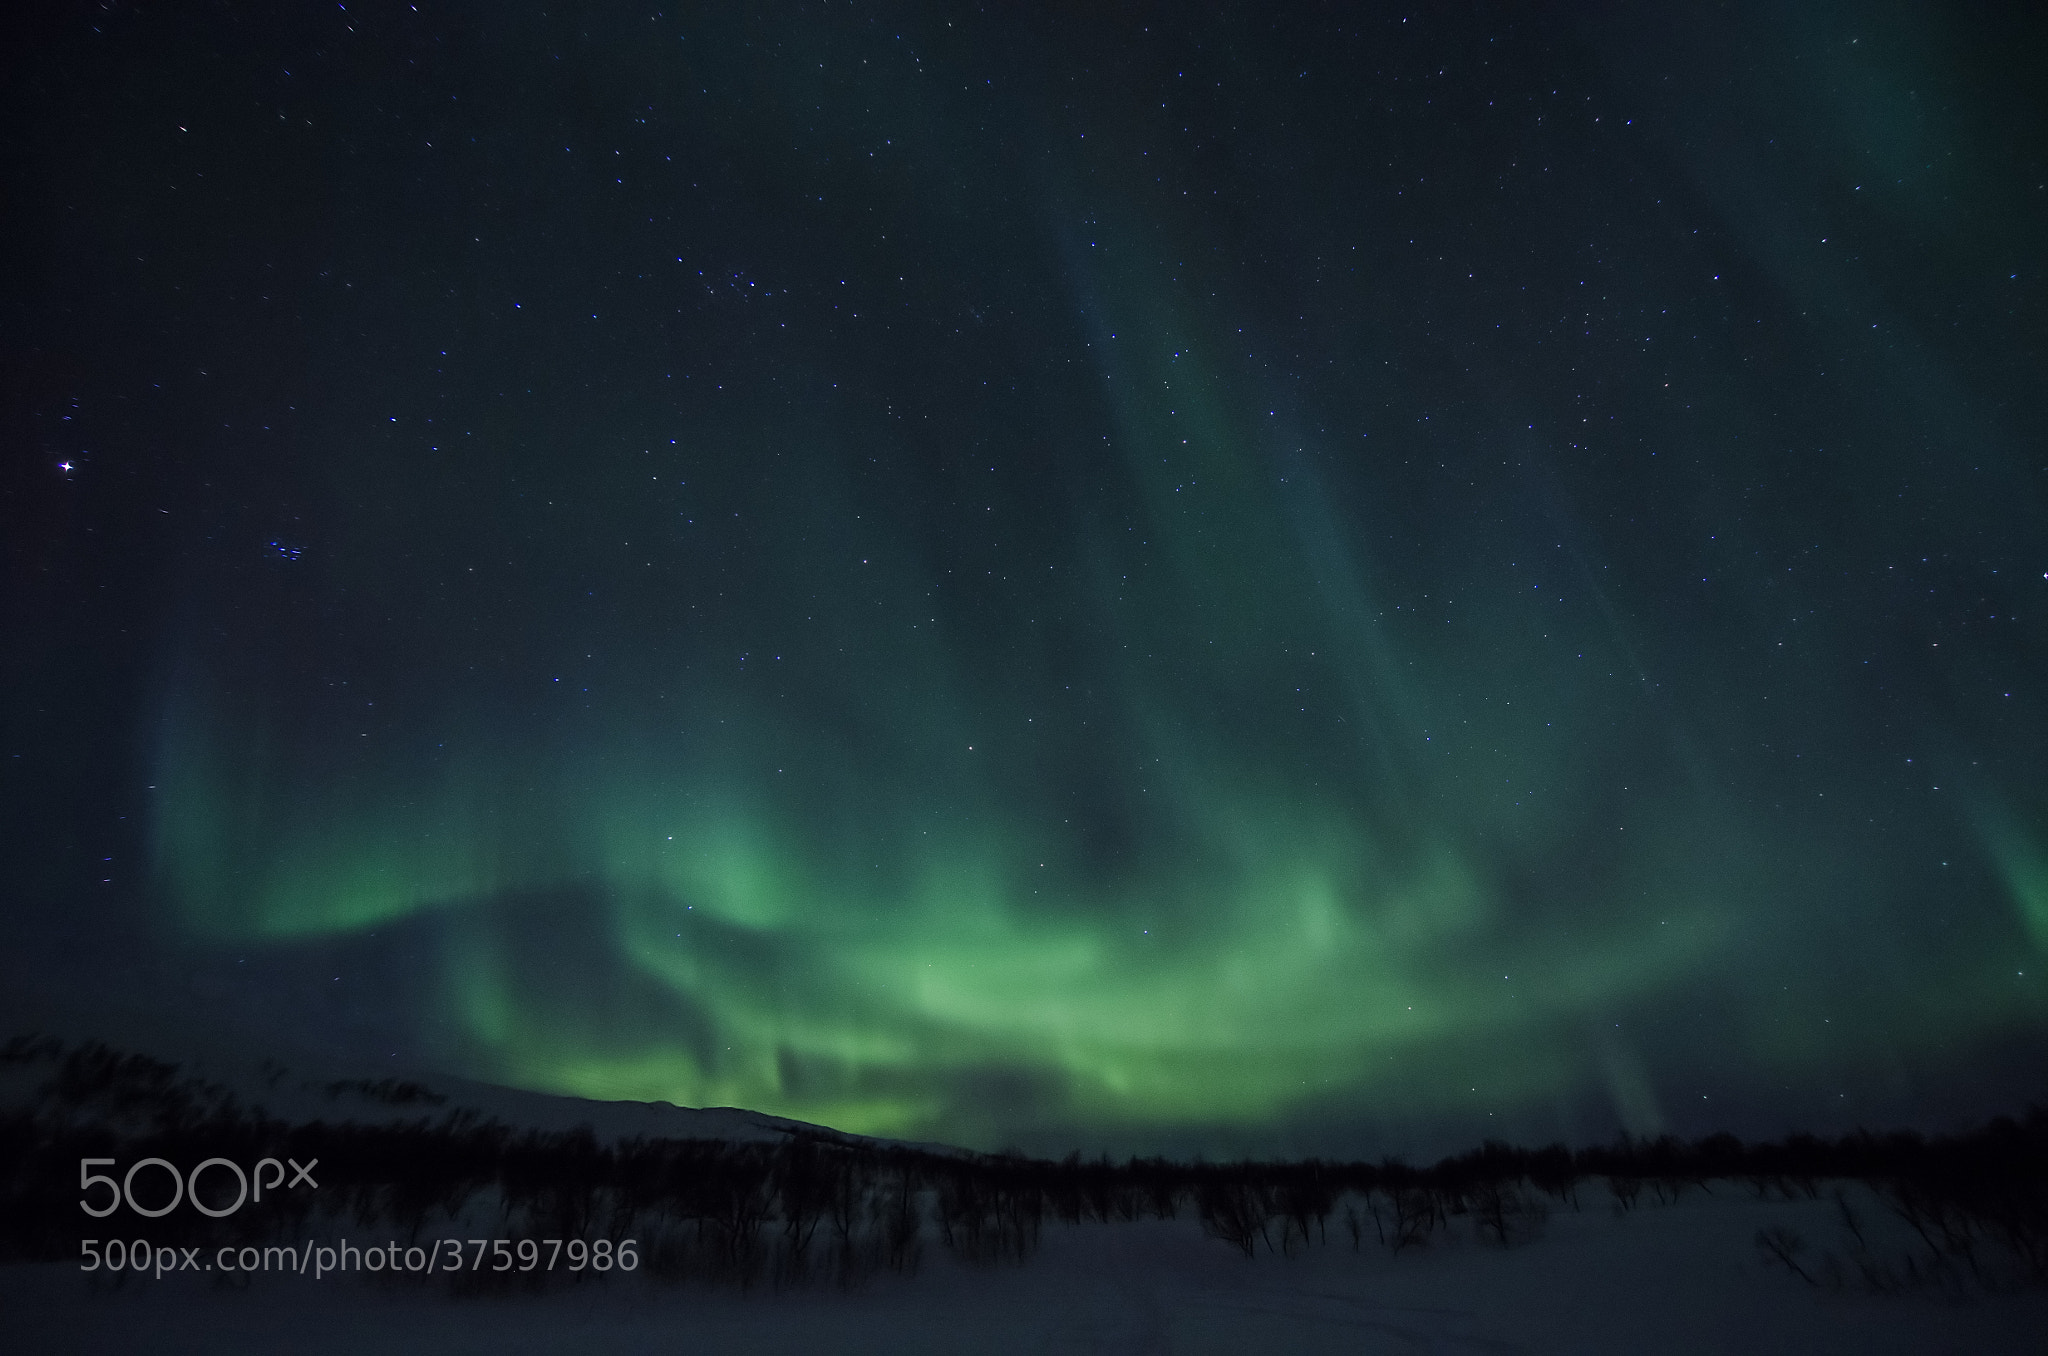 Photograph Fireworks in the sky 7 by Espen Hanssen on 500px